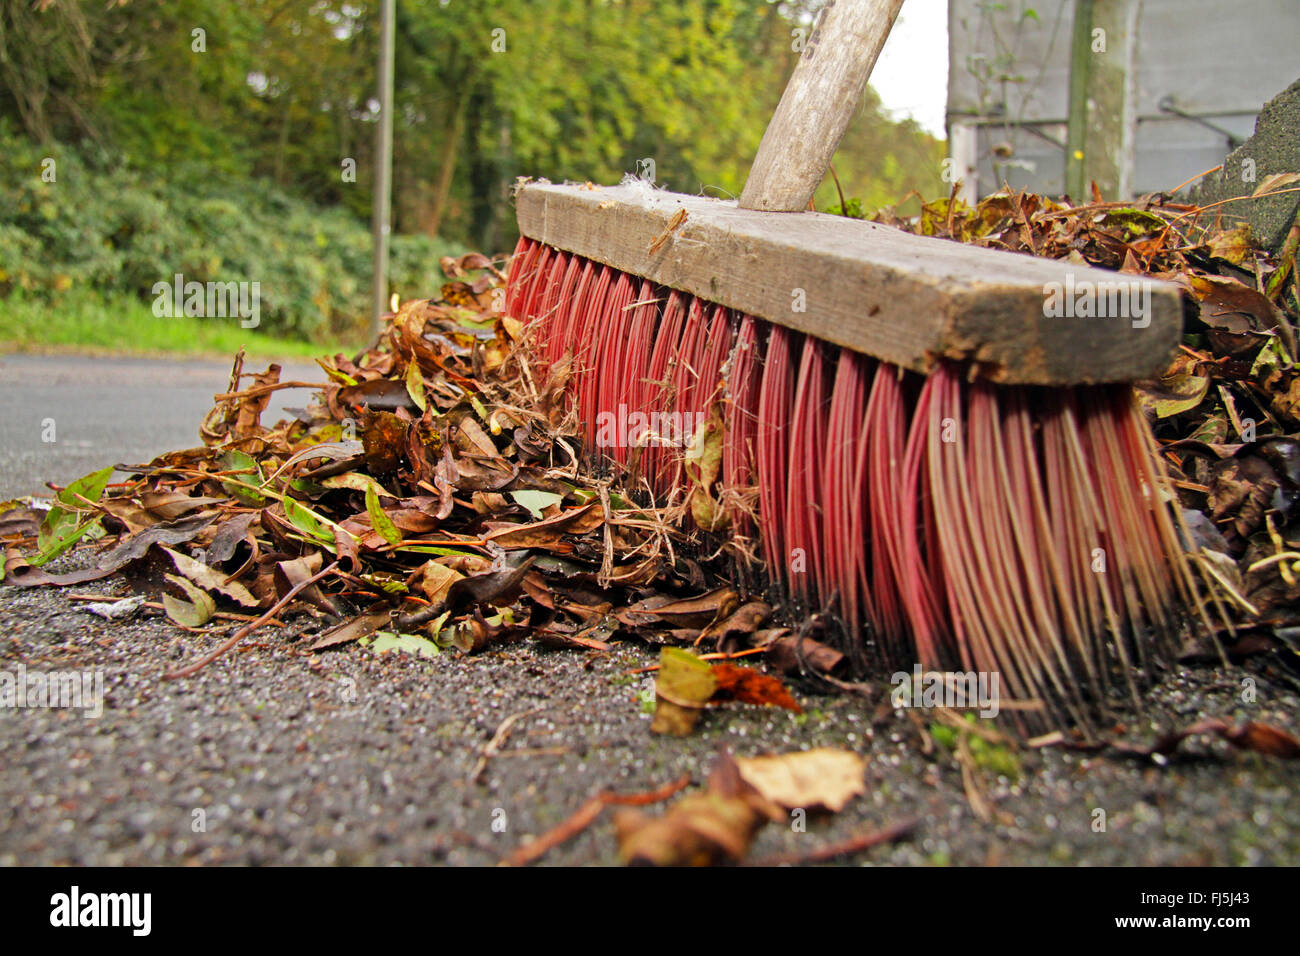 road broom for sweeping leaves, Germany - Stock Image